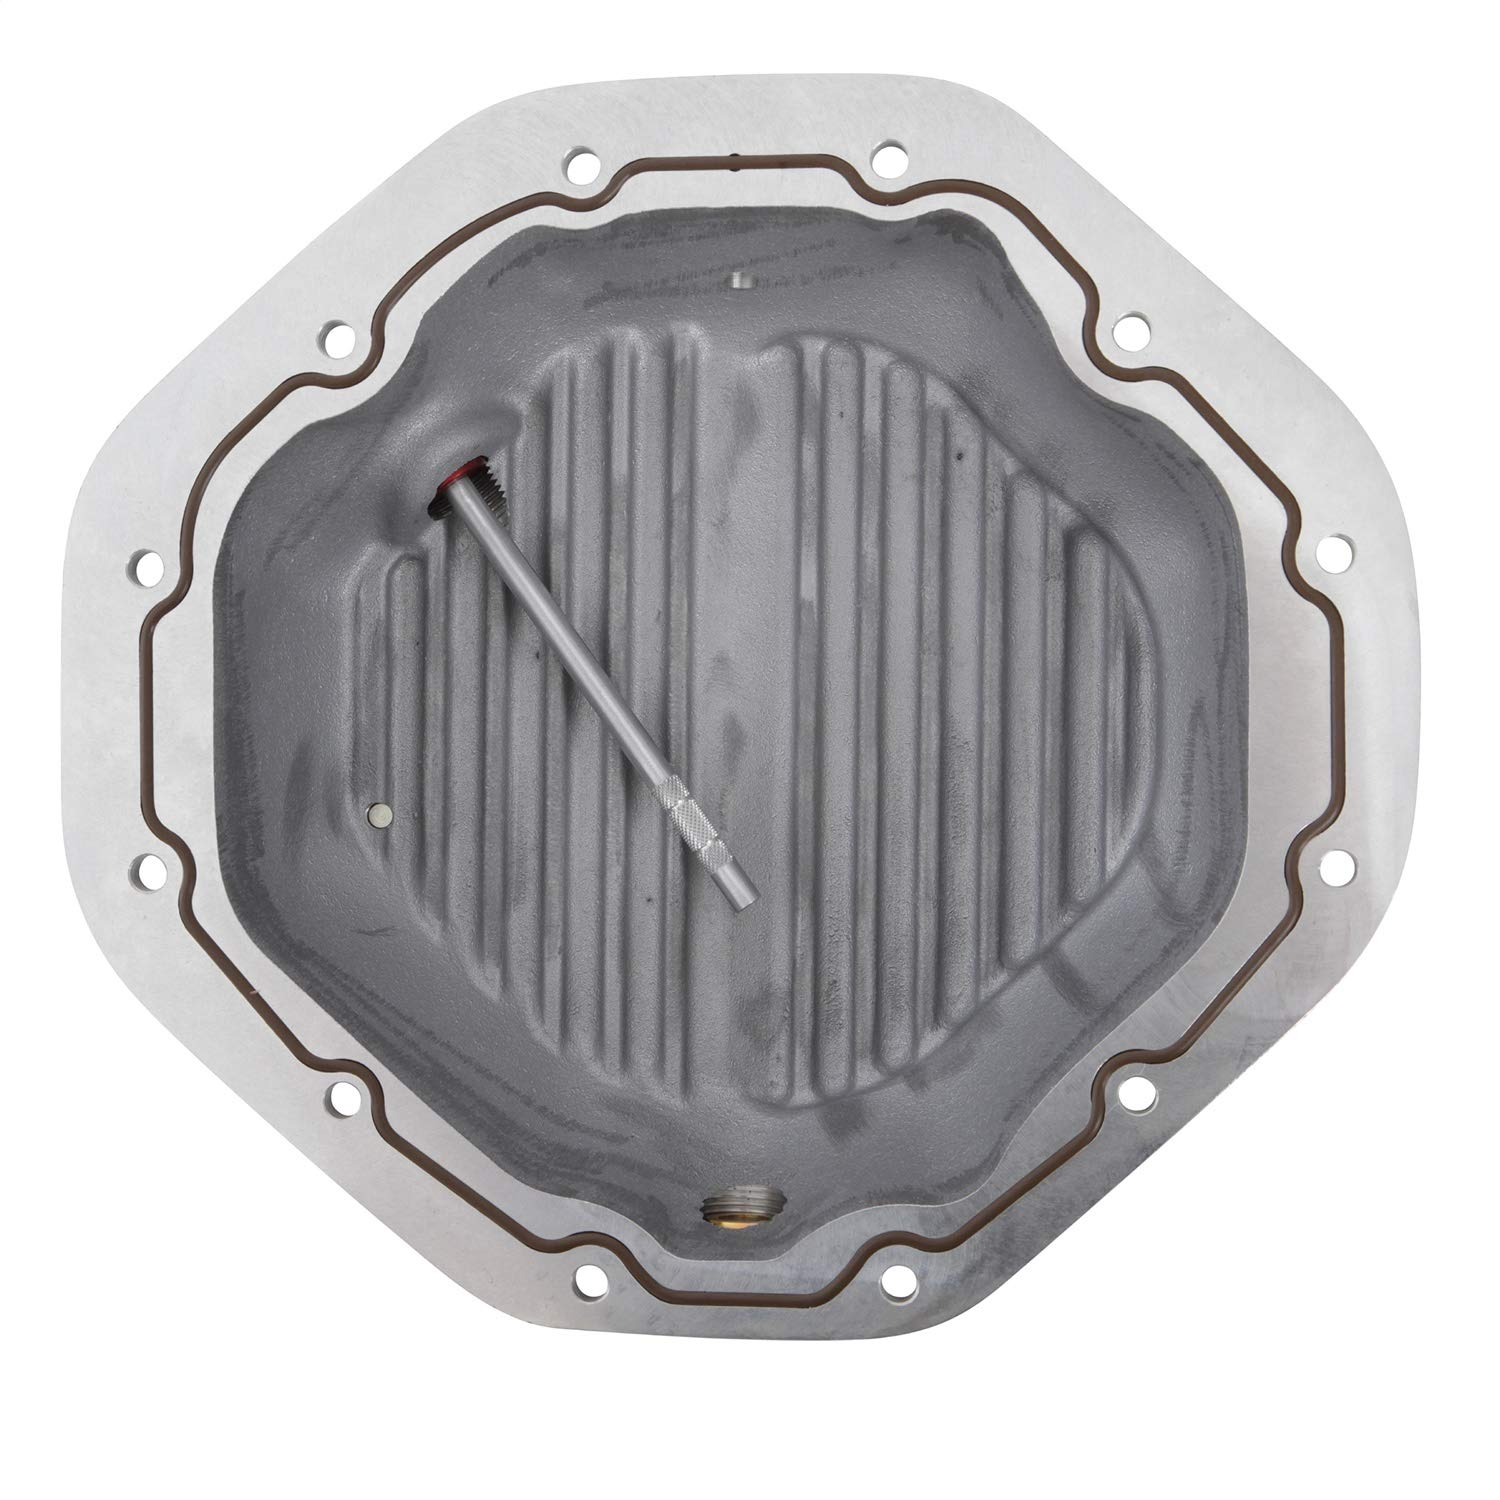 G2 Axle&Gear 40-2028MB Differential Cover